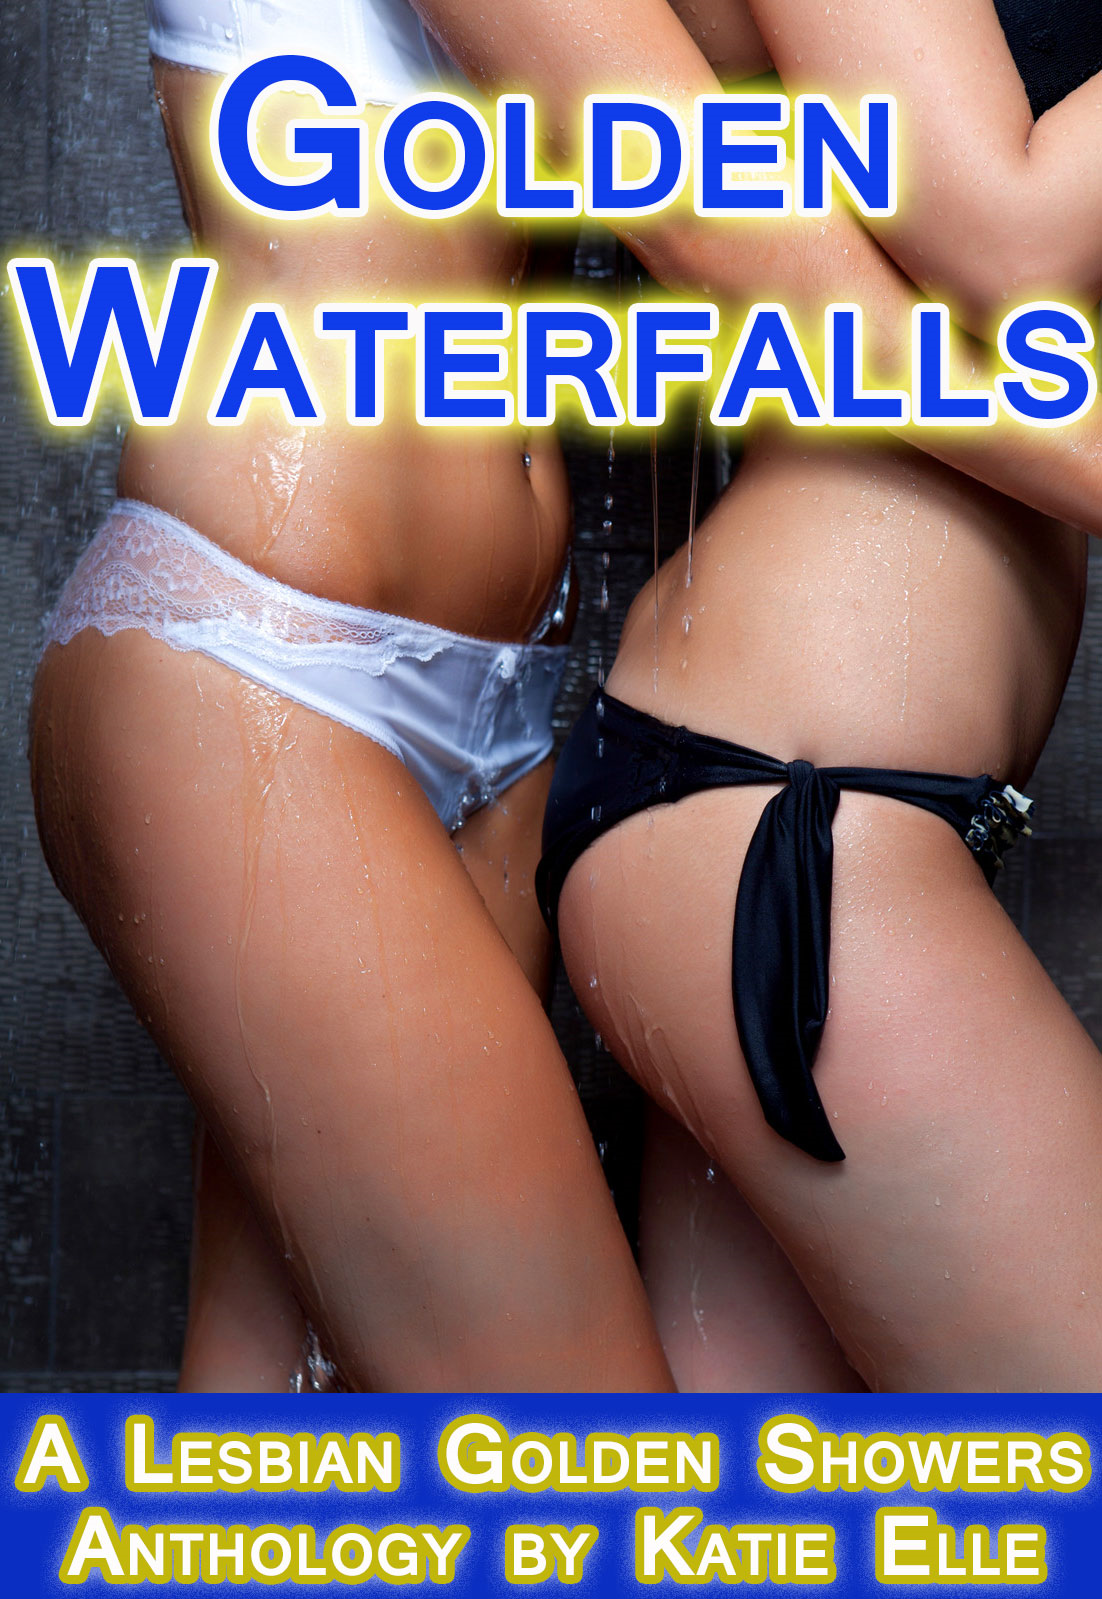 Golden Waterfalls, A Lesbian Golden Showers Anthology